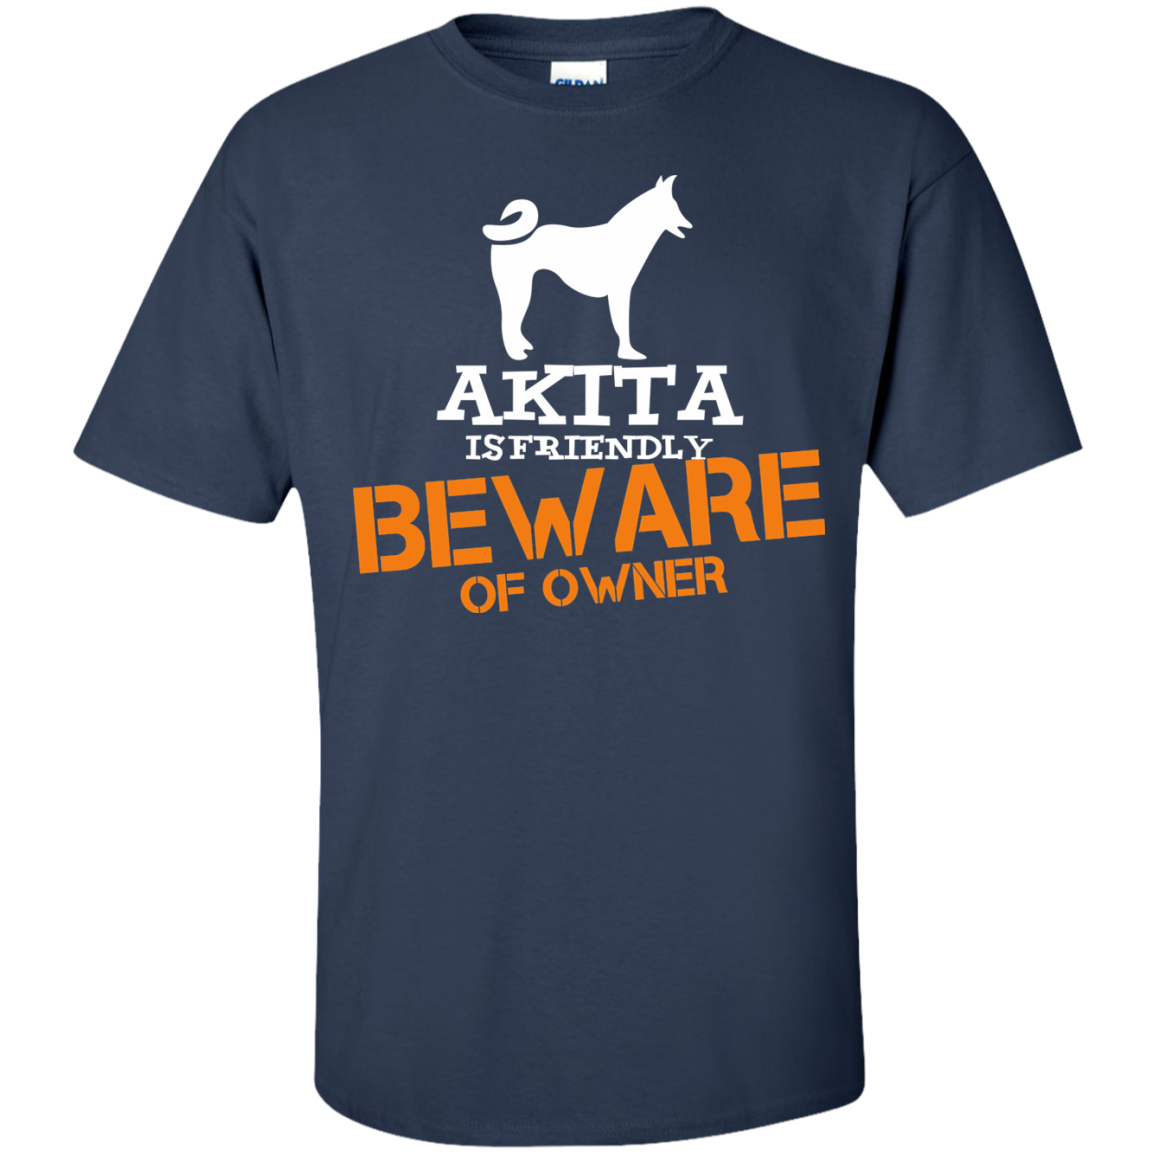 Akita is friendly beware of owner T-Shirt - The Sun Cat